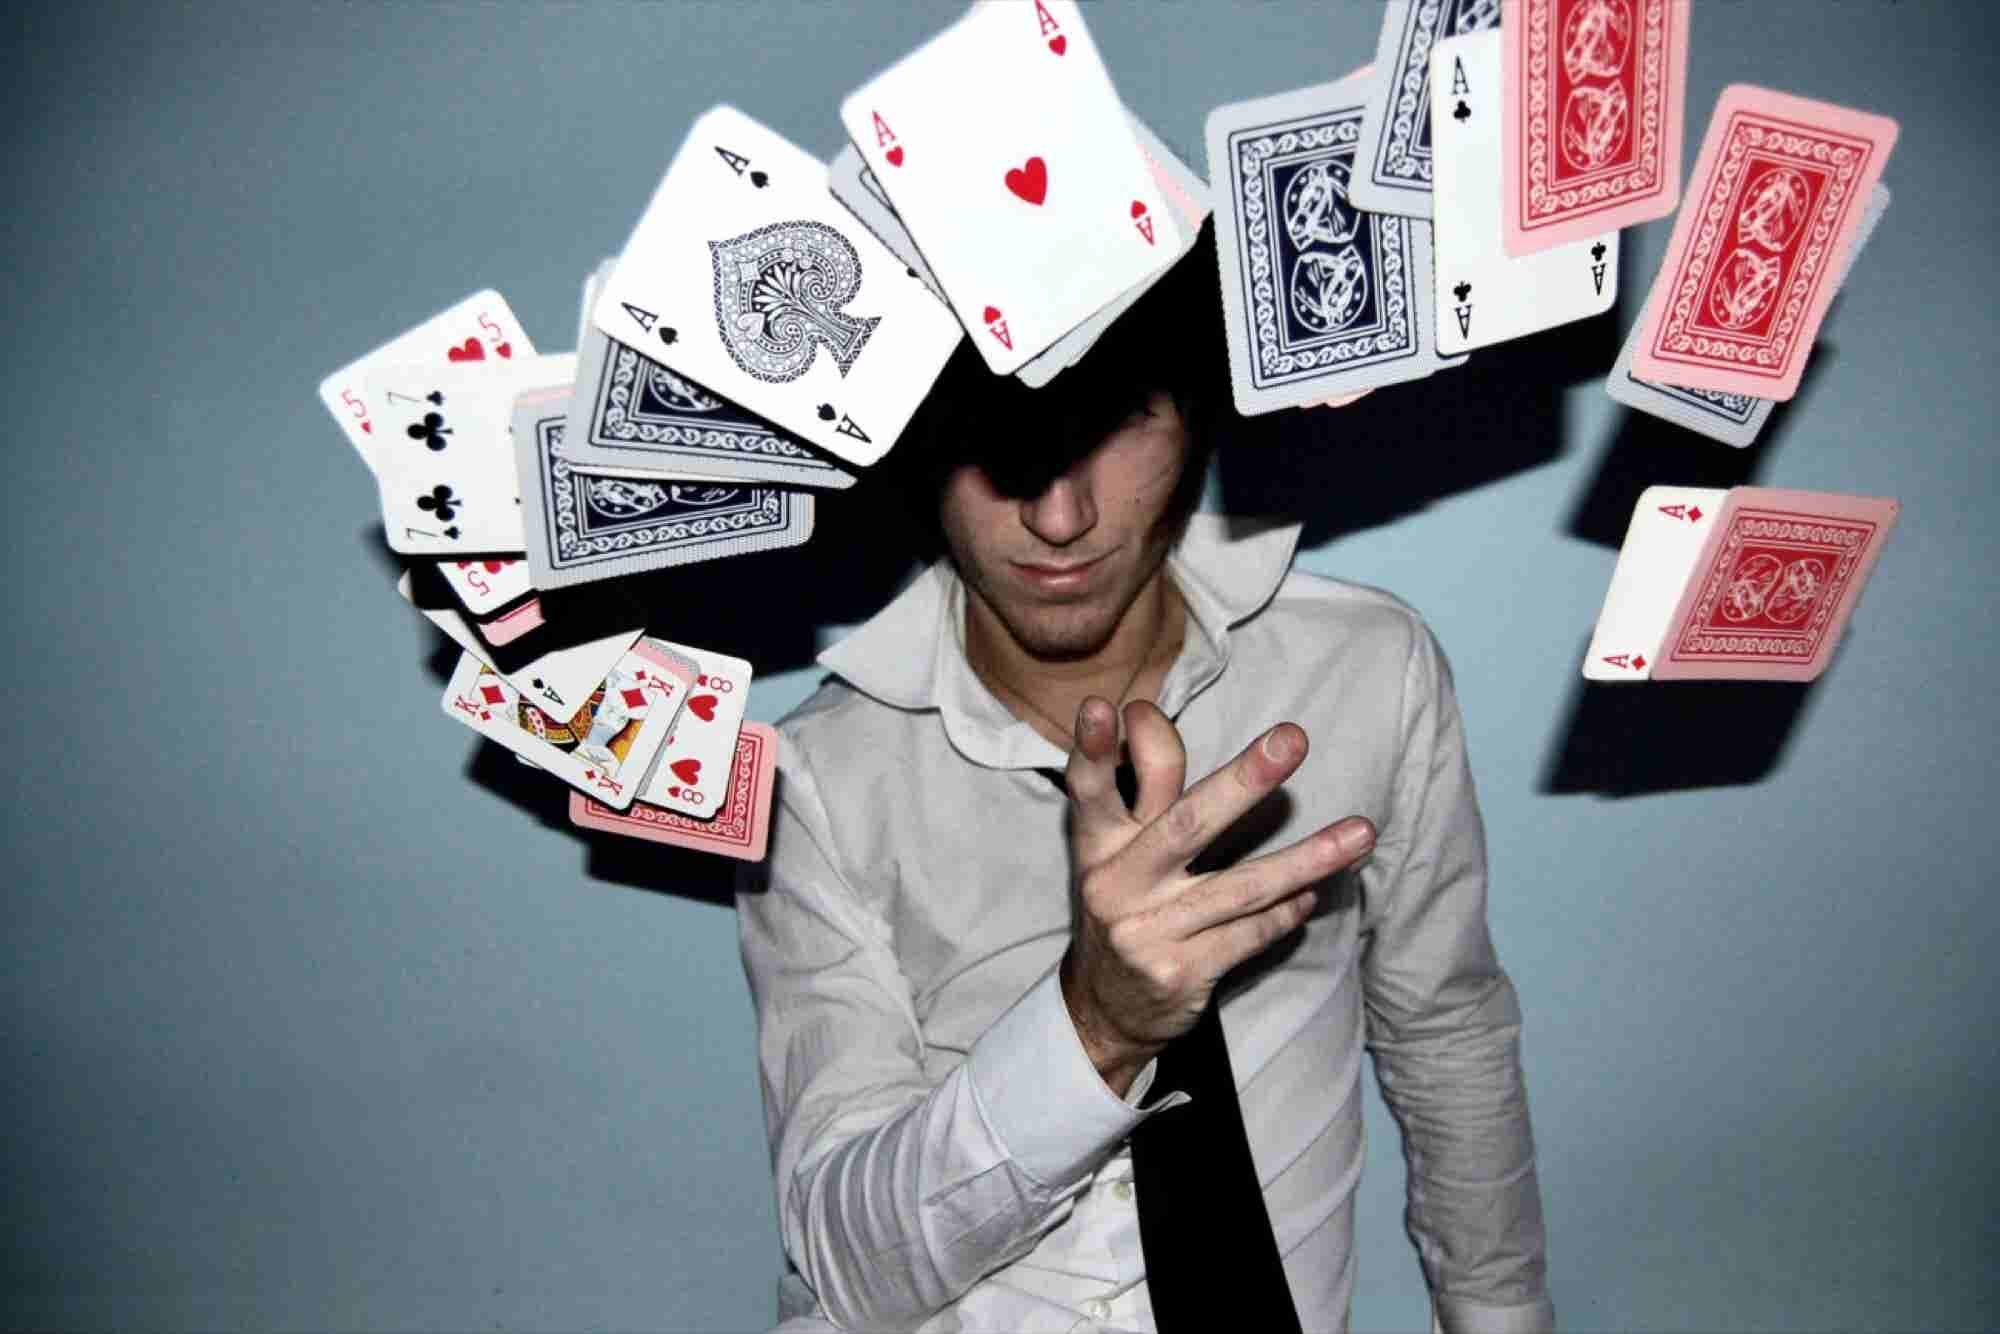 Entrepreneurs and Gamblers Have Much in Common